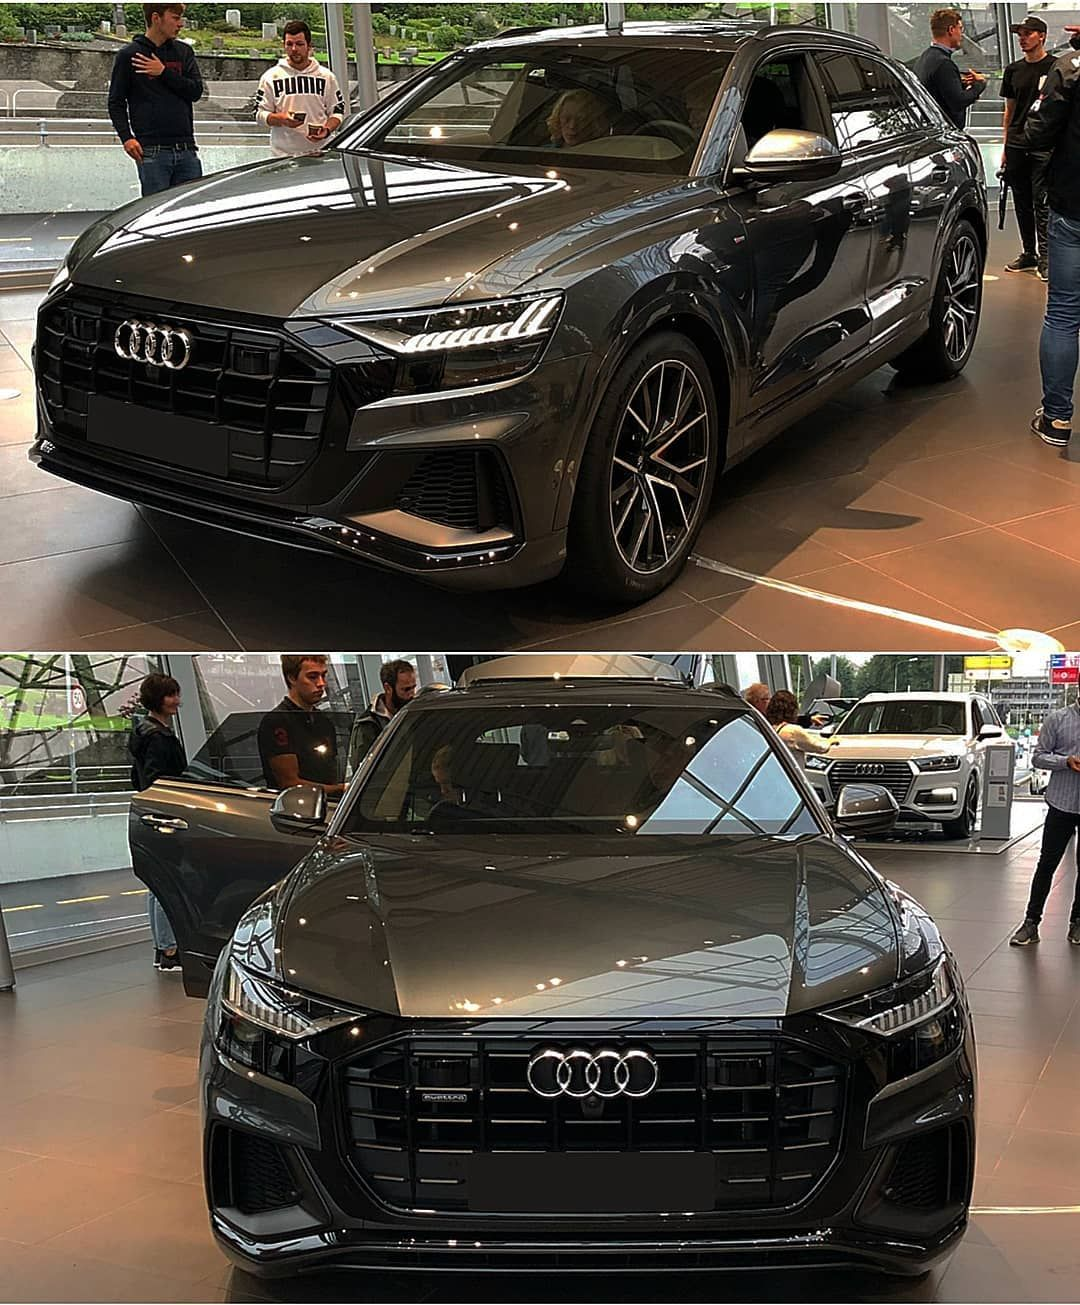 Big Daddy Ready Q8 Audi Lovers Q8 Nation Audi Audiq8 Audilove Carlove Suv Au Audi Suv Cars Luxury Suv